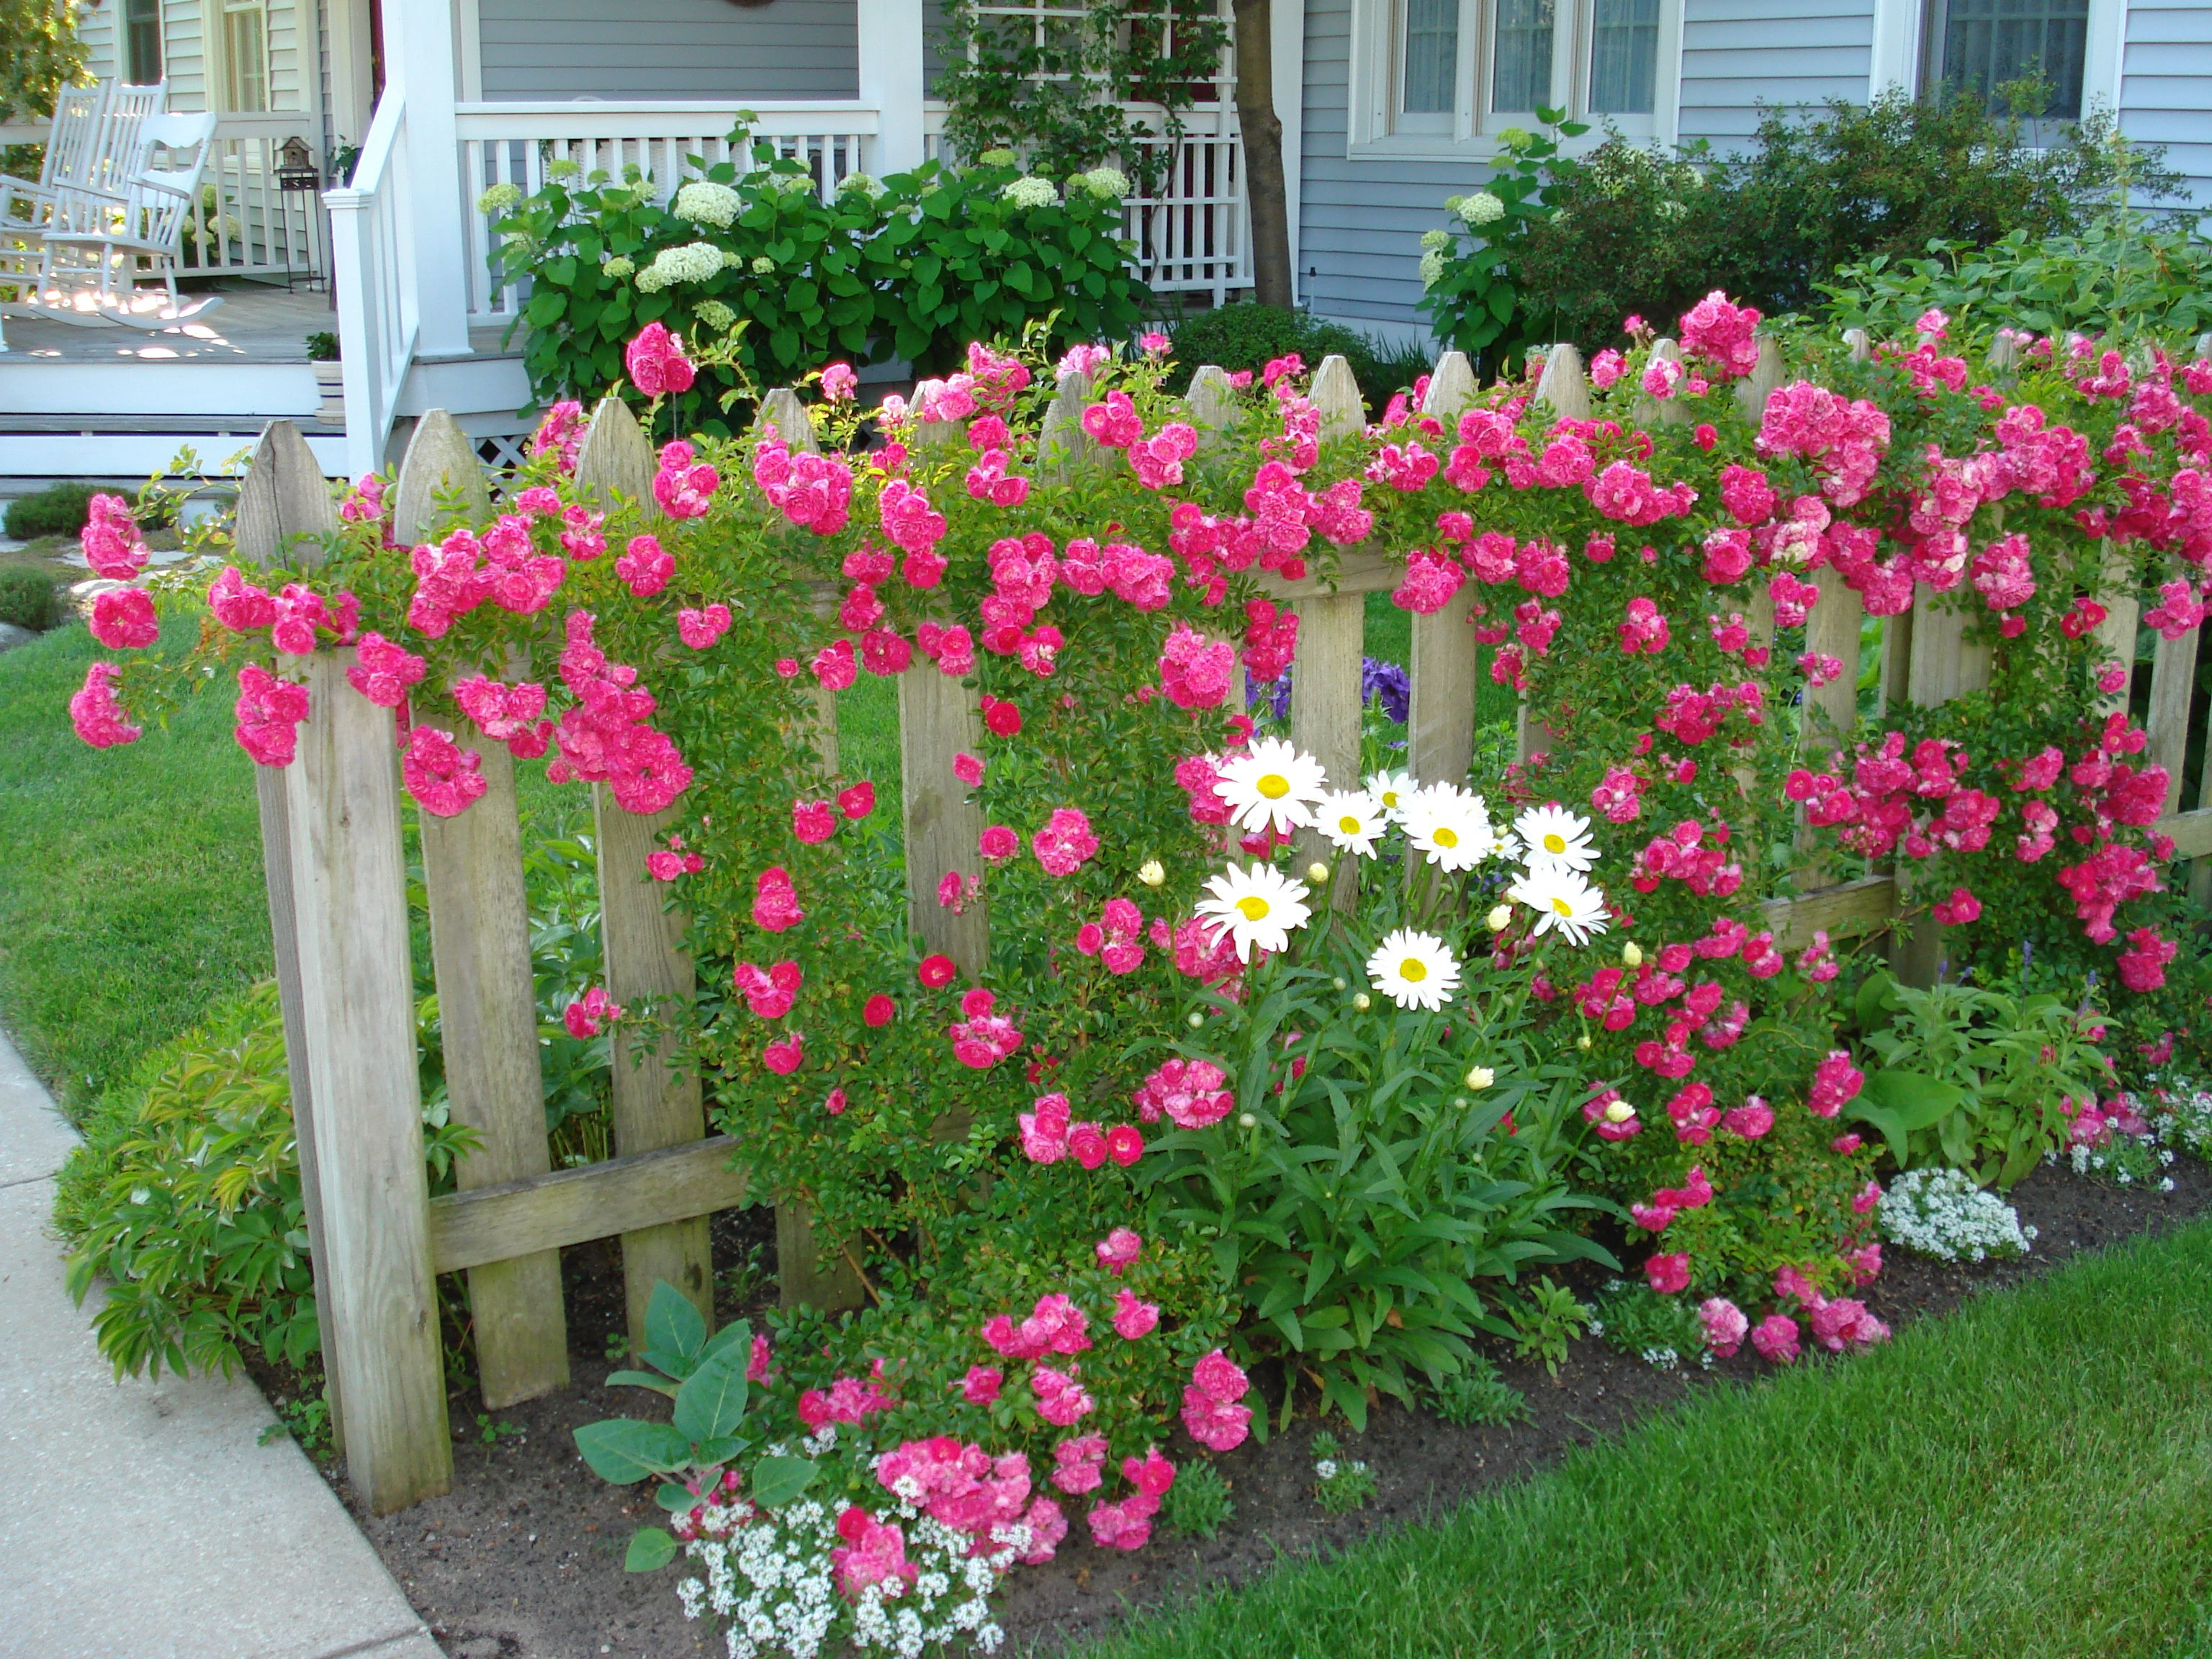 Climbing Roses On Board Fence Brought To You By Cookies In